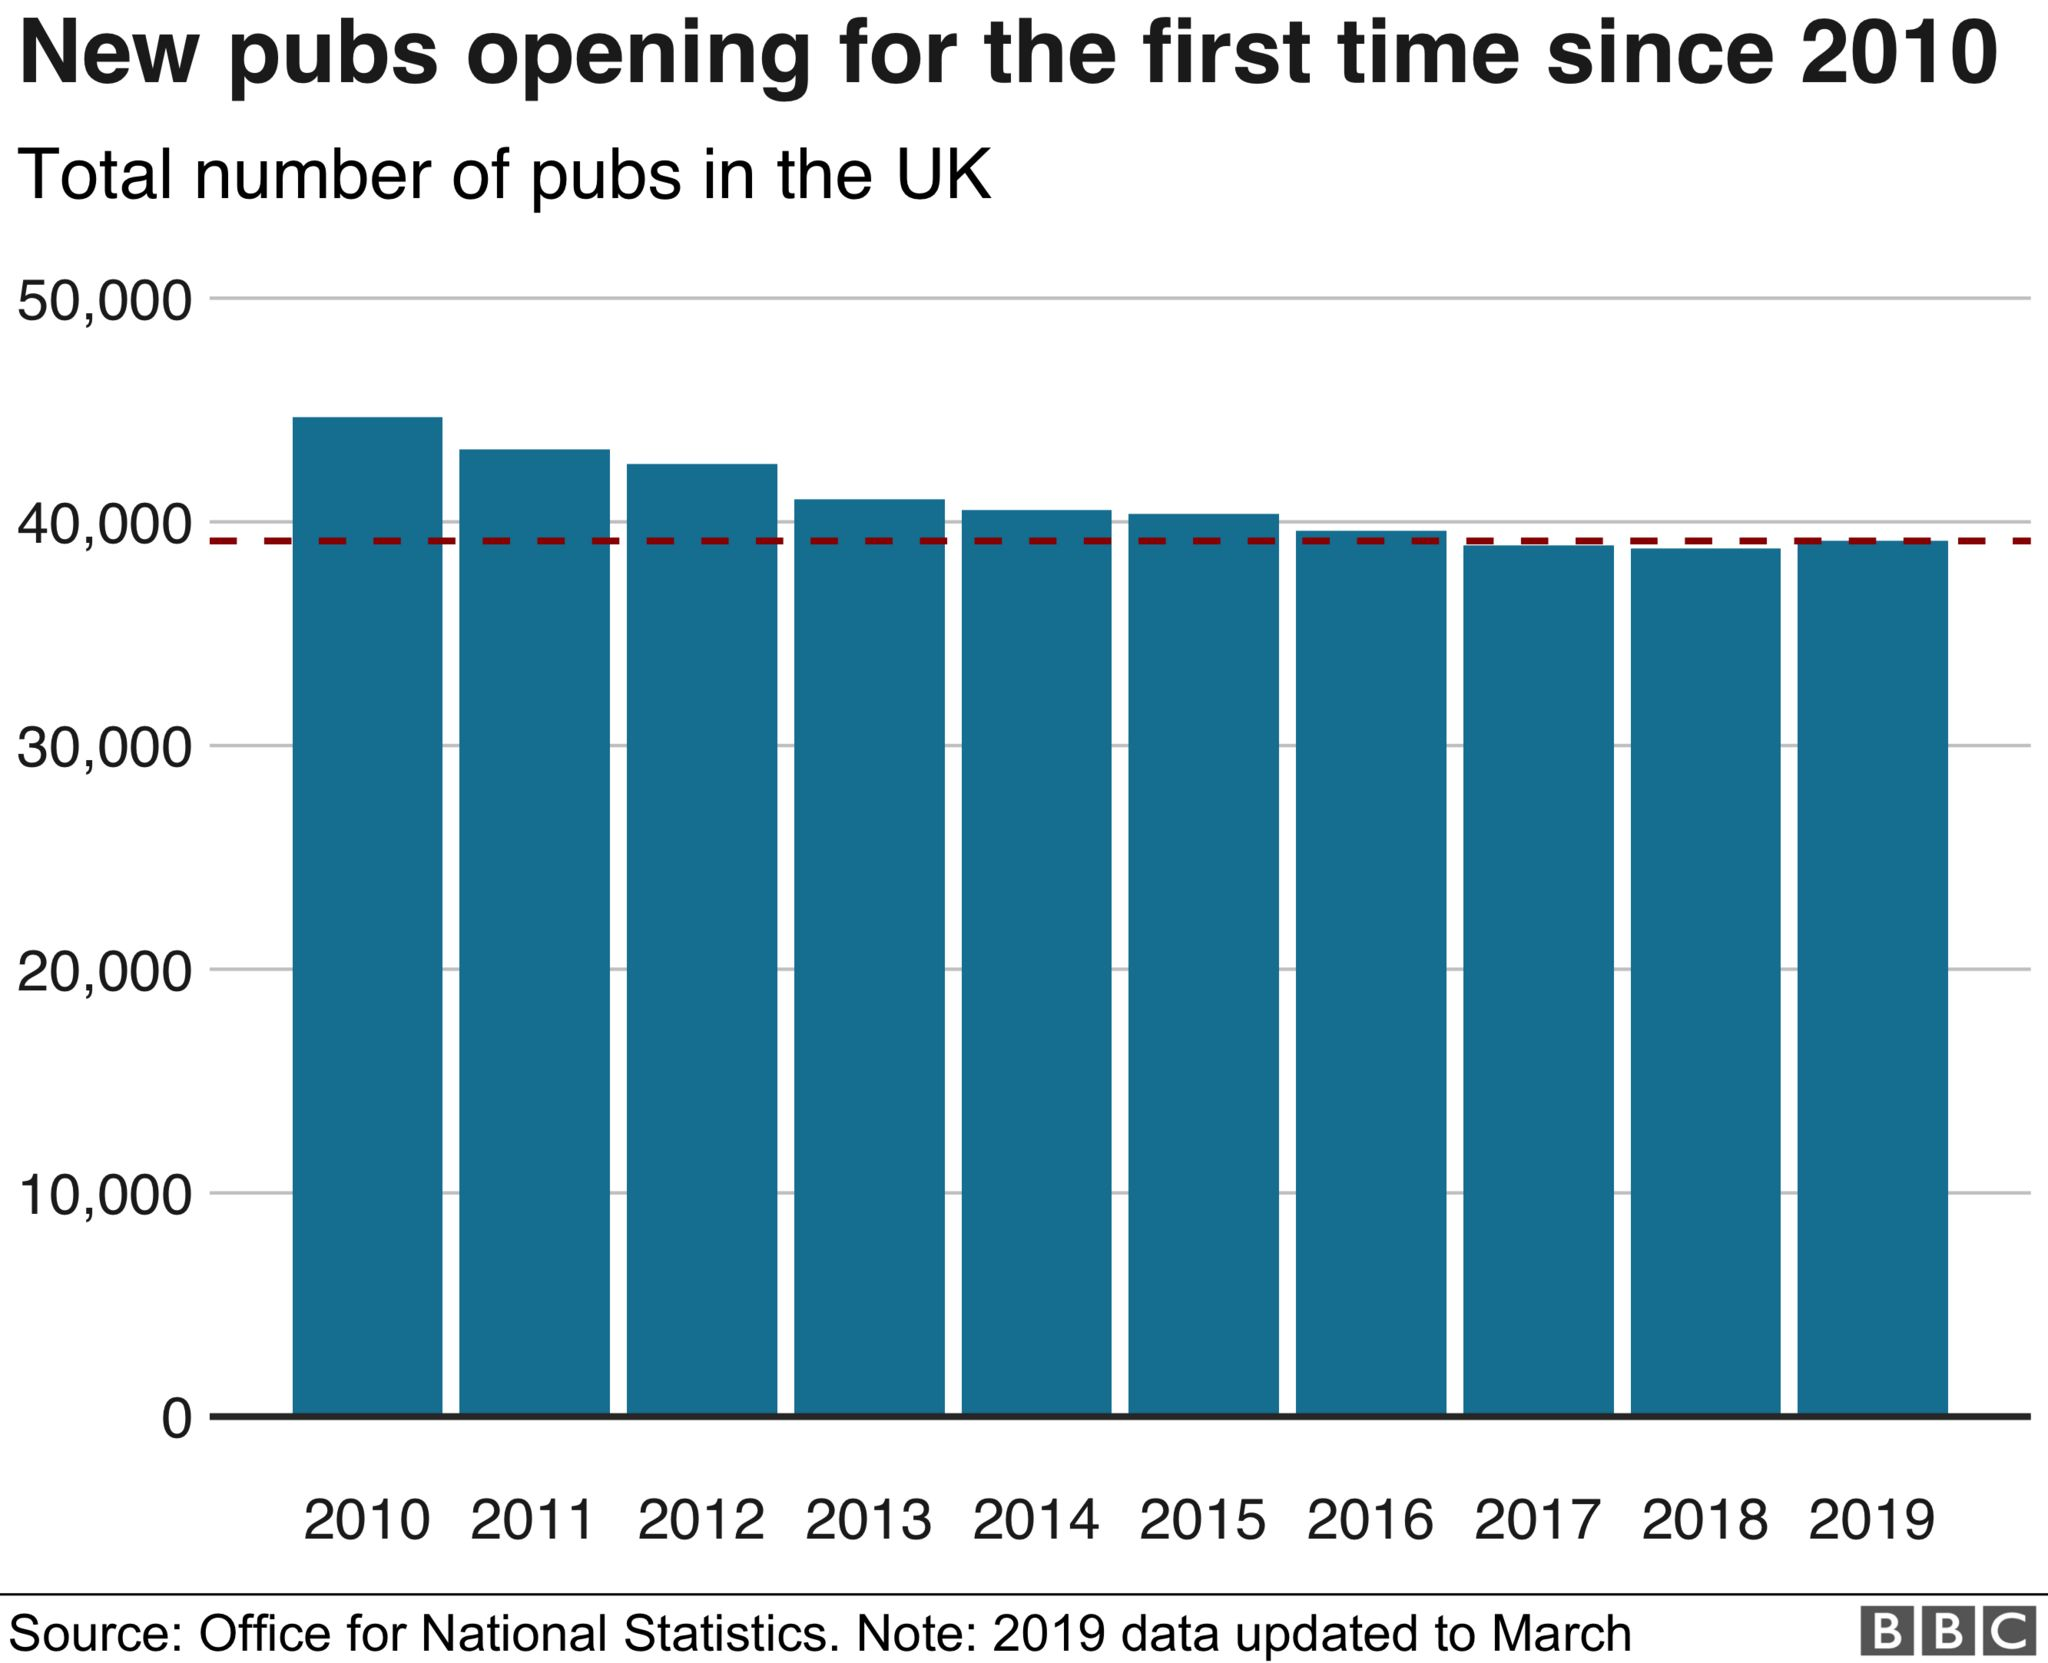 Chart shows the 10 year decline of the number of pubs and the slight uptick from last year